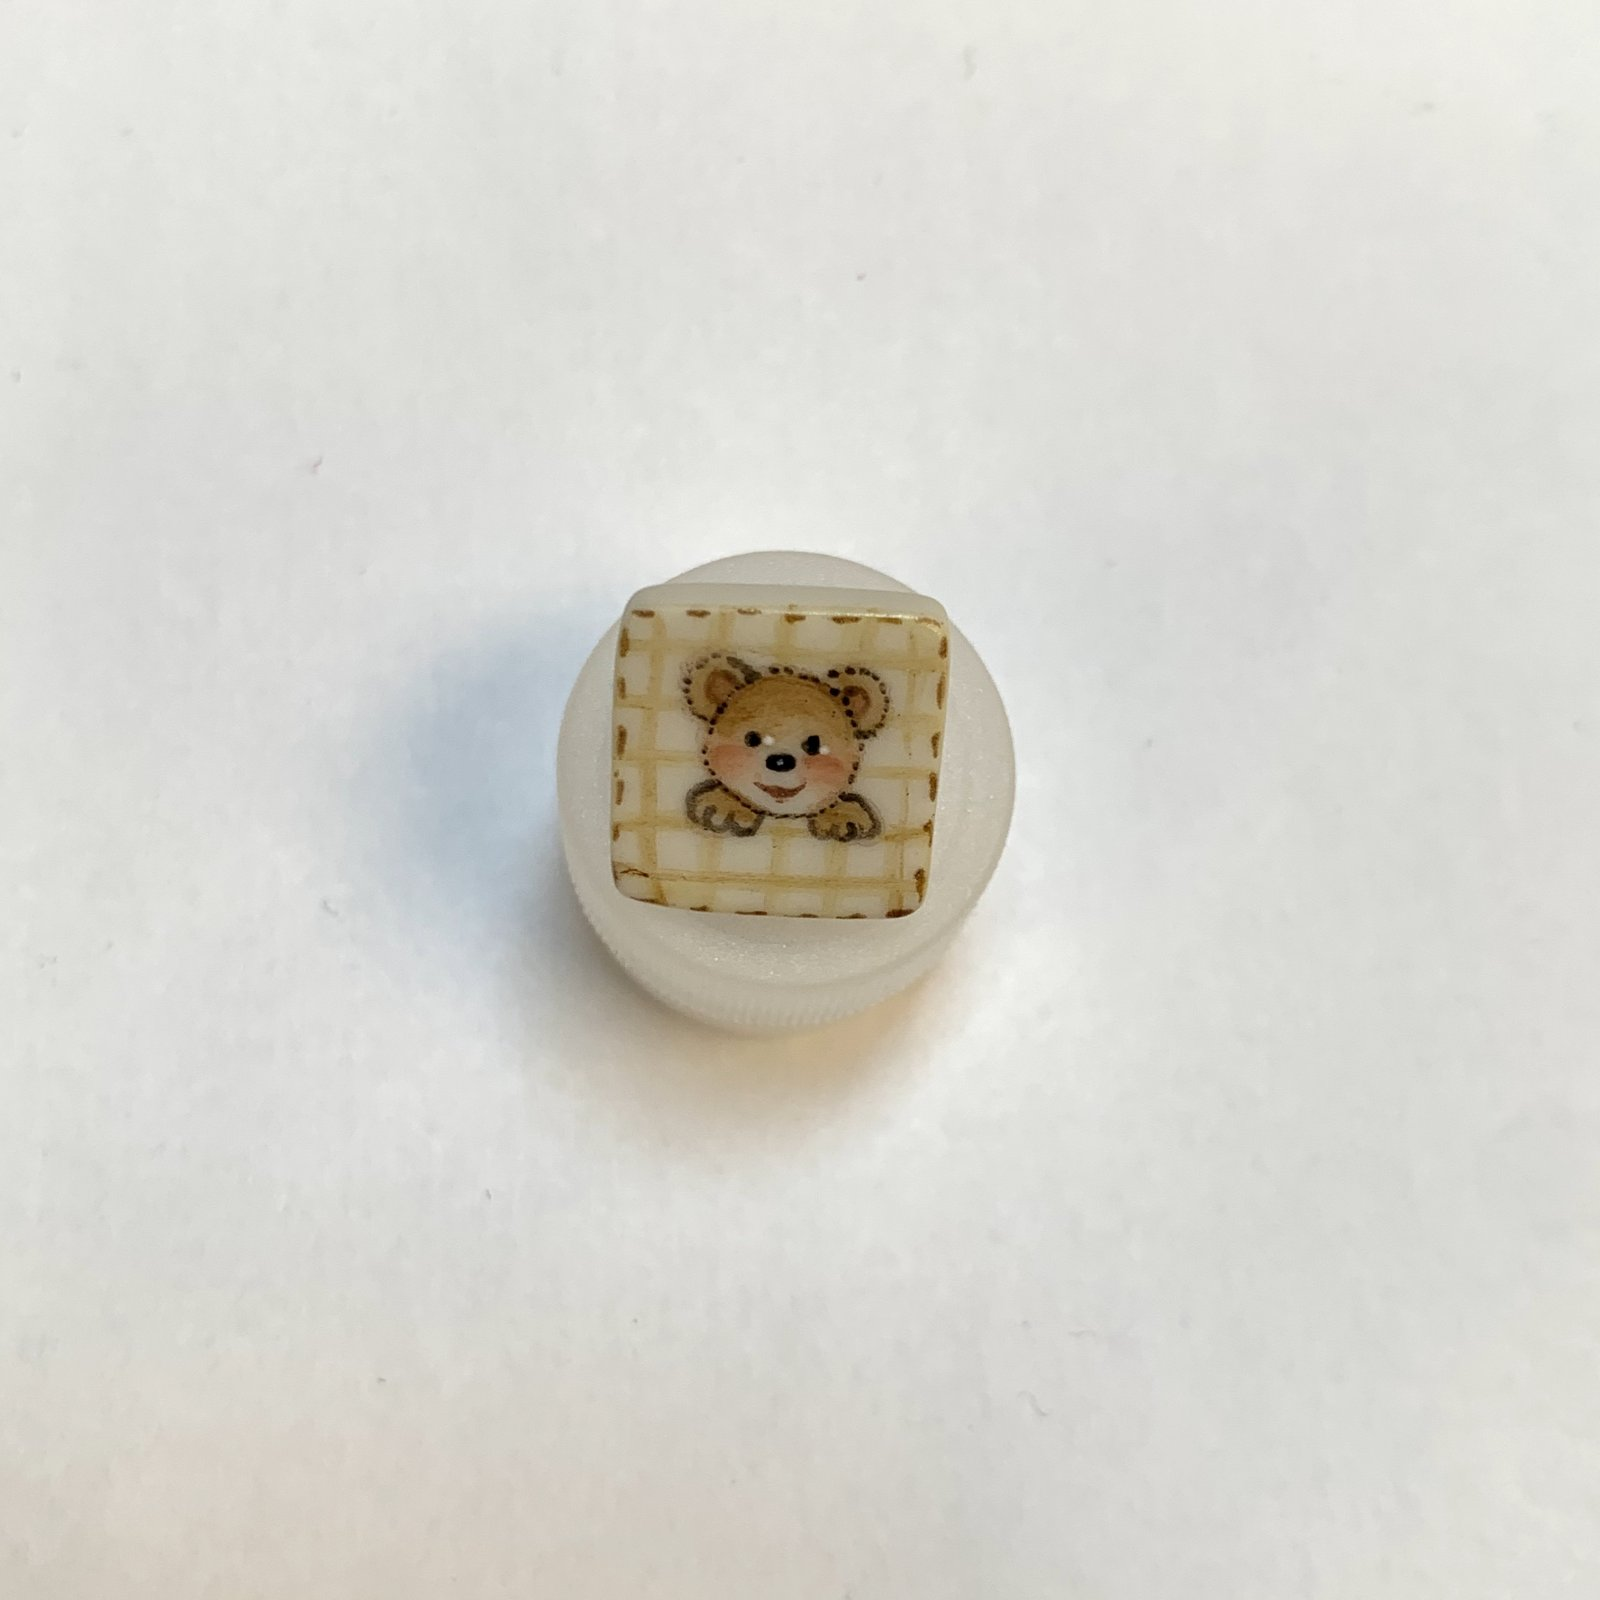 Bear Square Porcelain Button 1/2 Inch